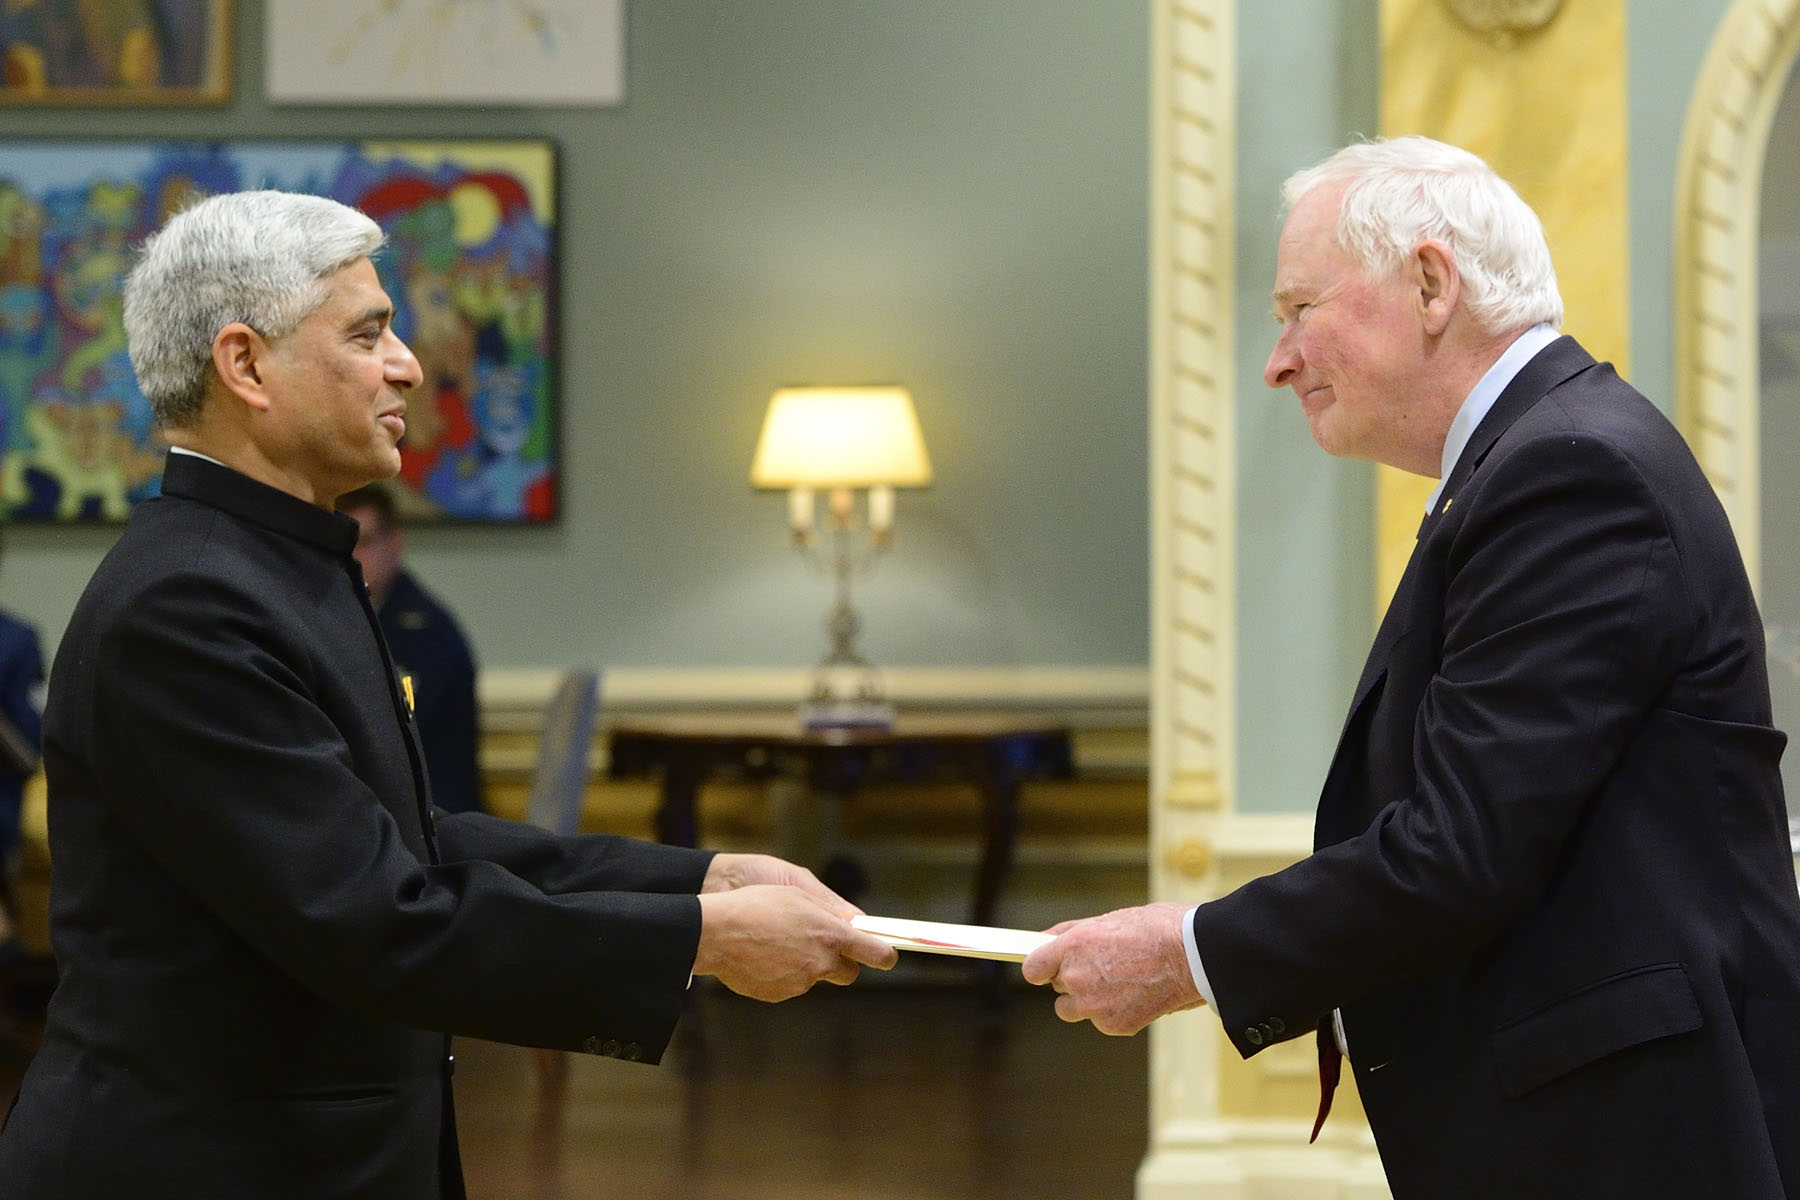 The first to present his letters of credence was His Excellency Vikas Swarup, High Commissioner of the Republic of India.